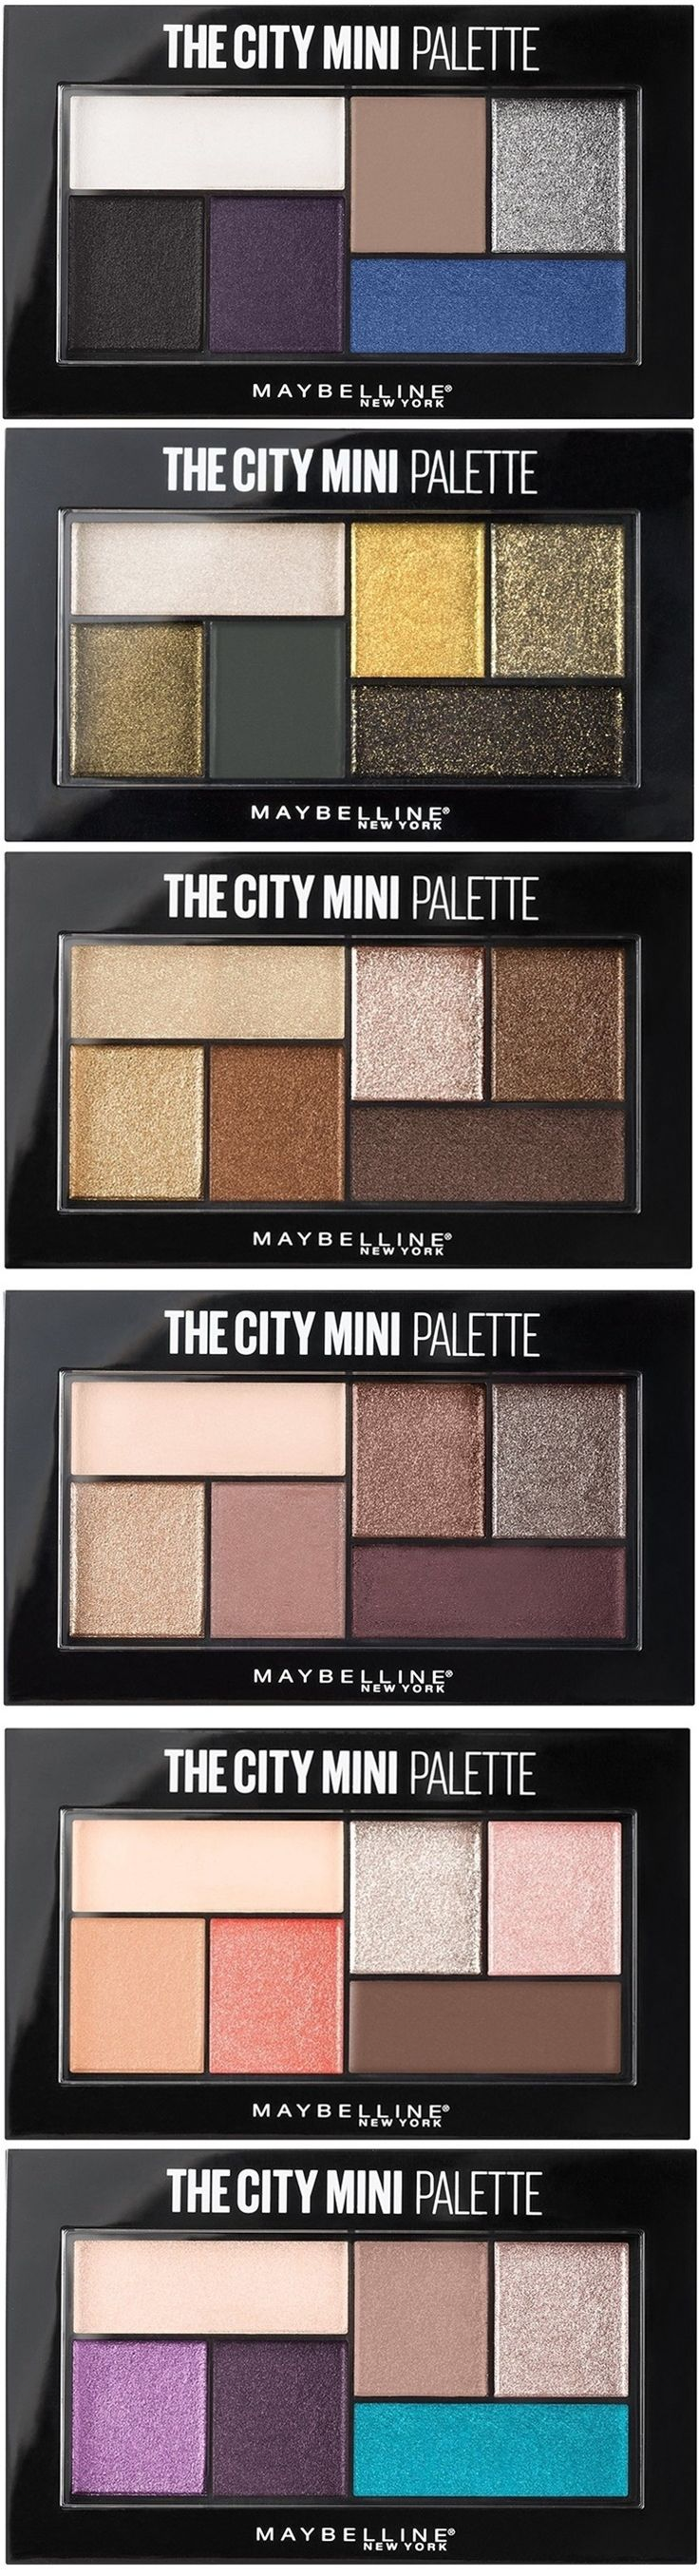 Maybelline's New $7.99 The City Mini Palette...